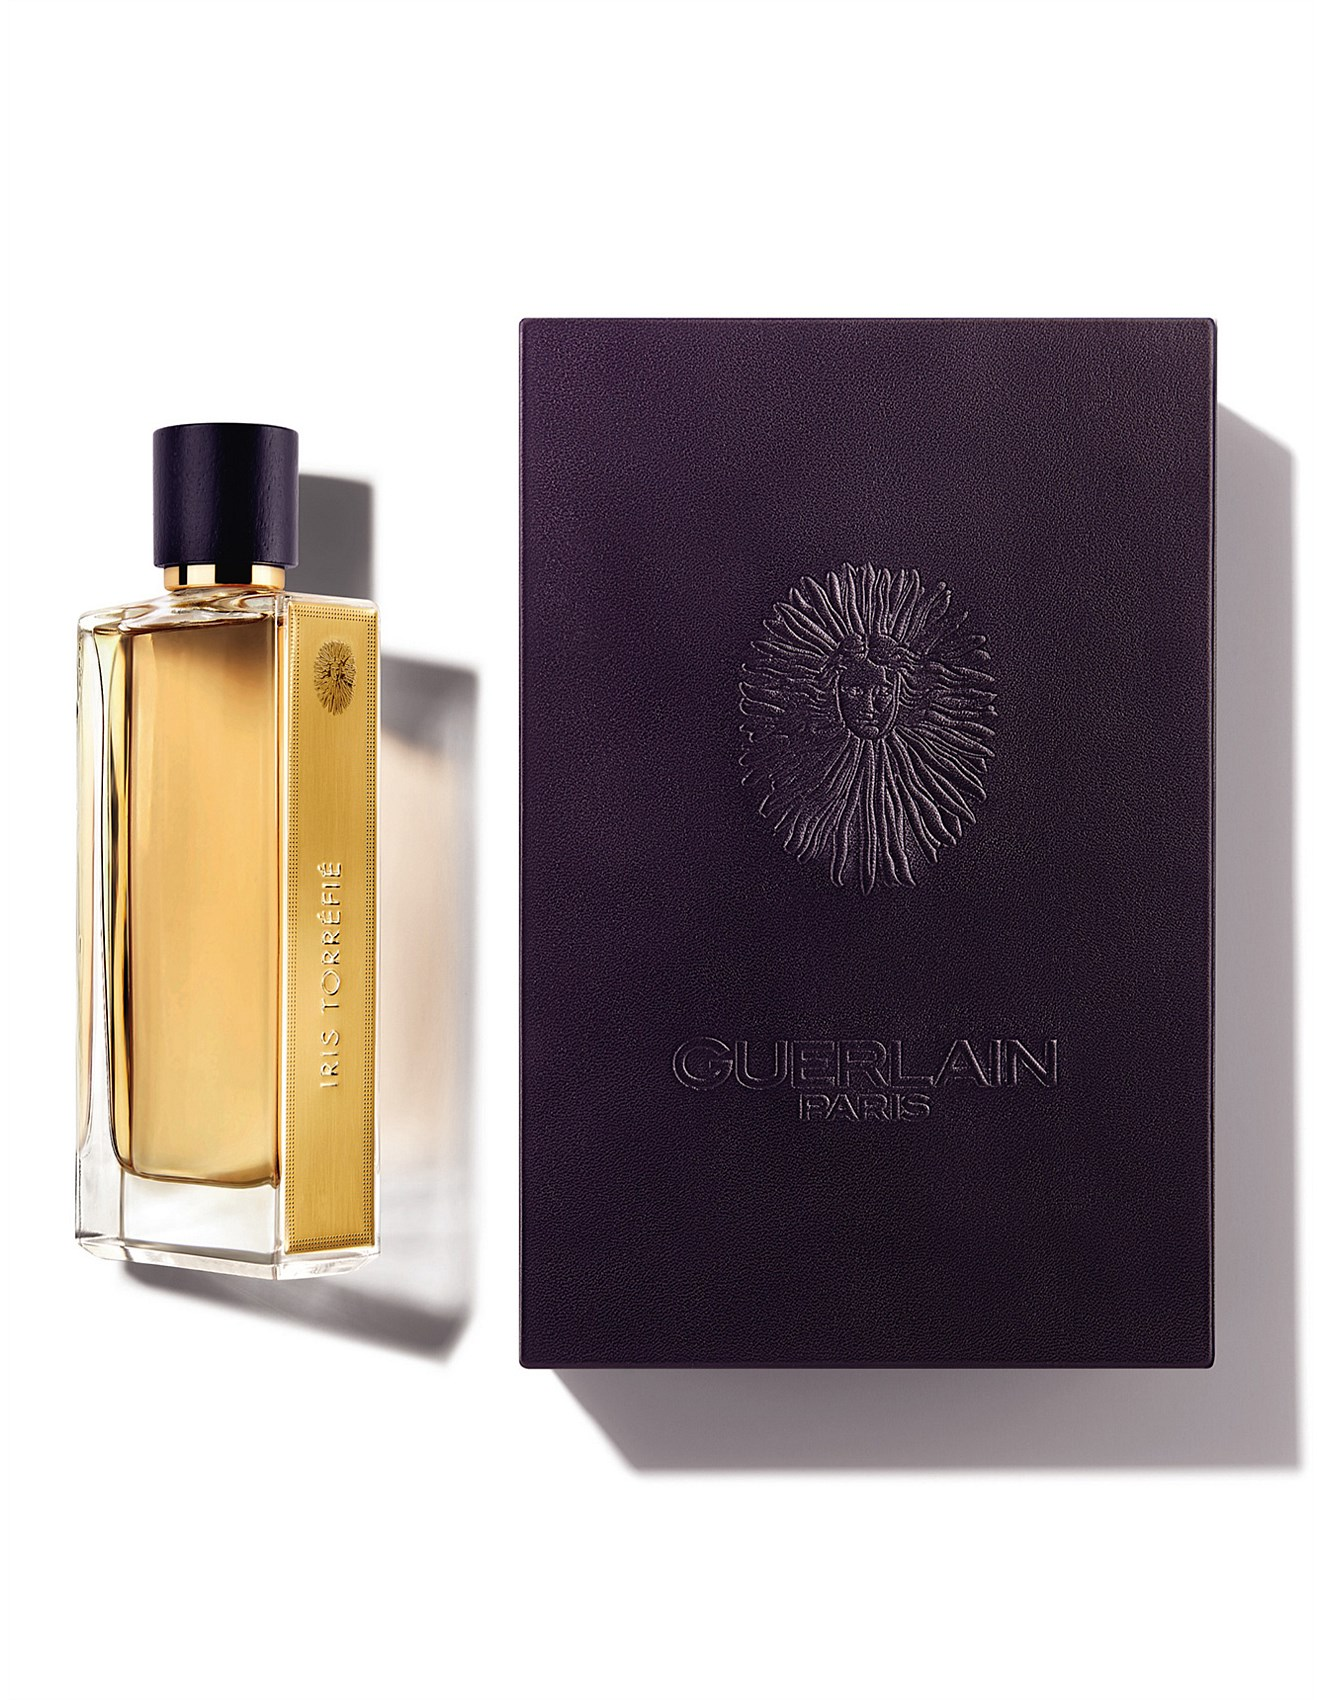 Guerlain iris torrefie fragrance review